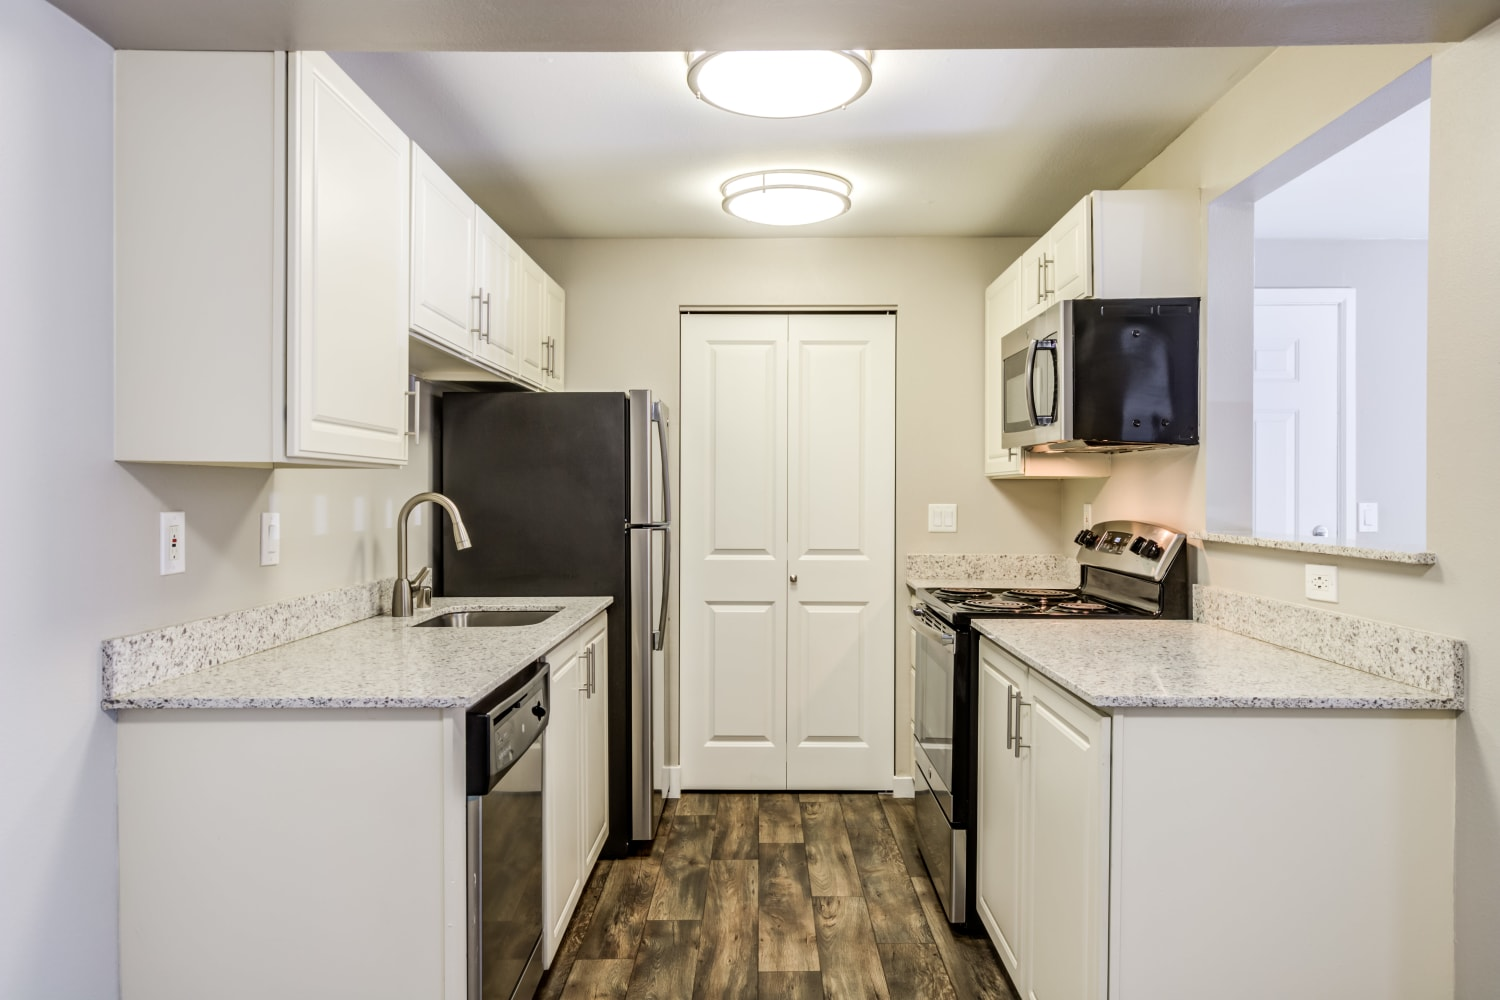 Kitchen at Campbell Run Apartments in Woodinville, Washington